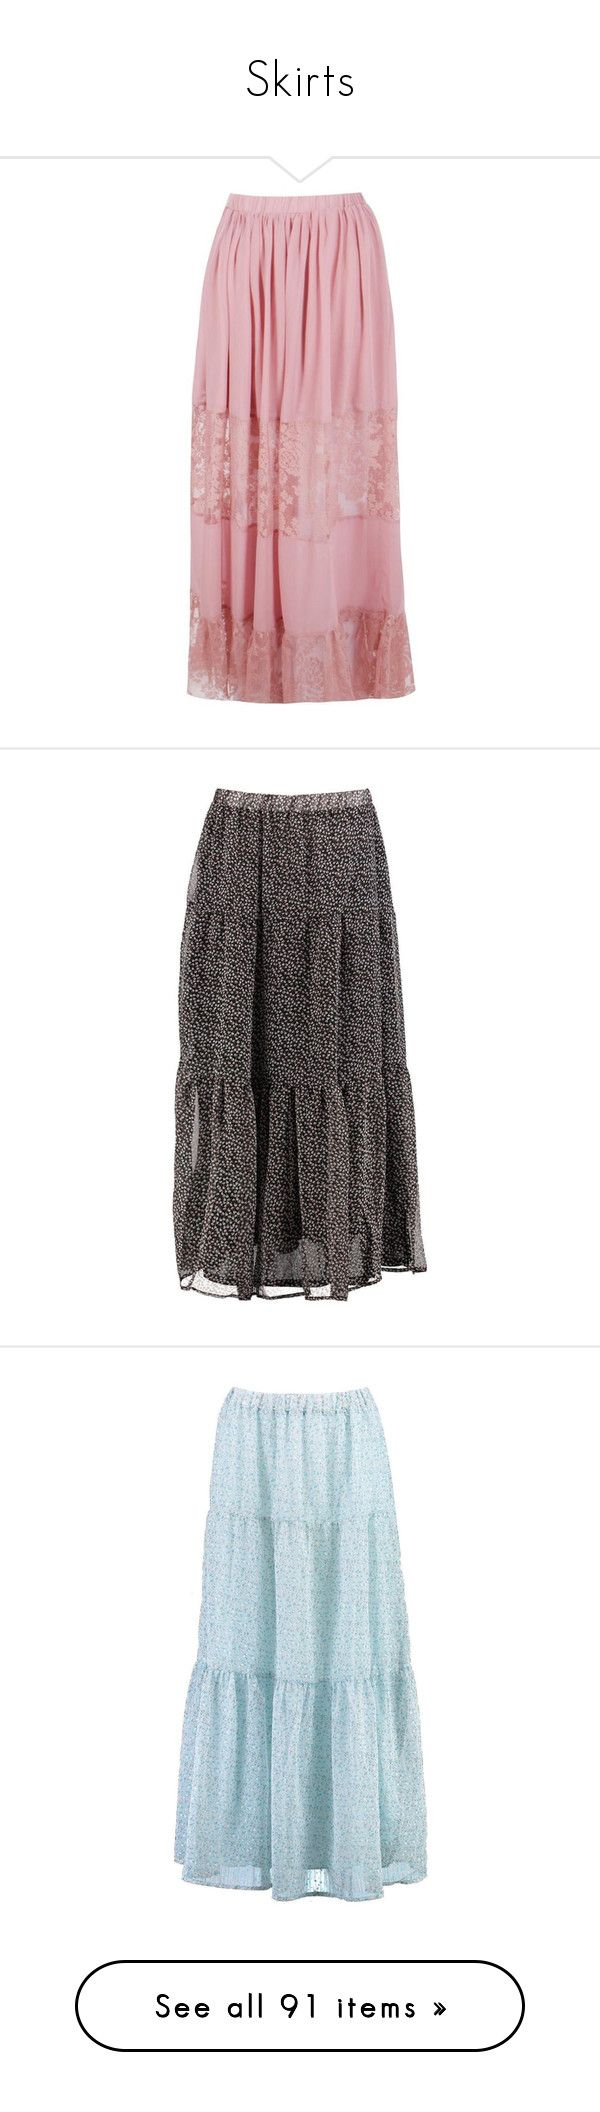 """Skirts"" by lustydame ❤ liked on Polyvore featuring skirts, pleated midi skirts, long pleated maxi skirt, chiffon maxi skirt, pleated chiffon maxi skirt, long maxi skirts, midi circle skirt, long pleated skirt, circle skirt and mini skirt"